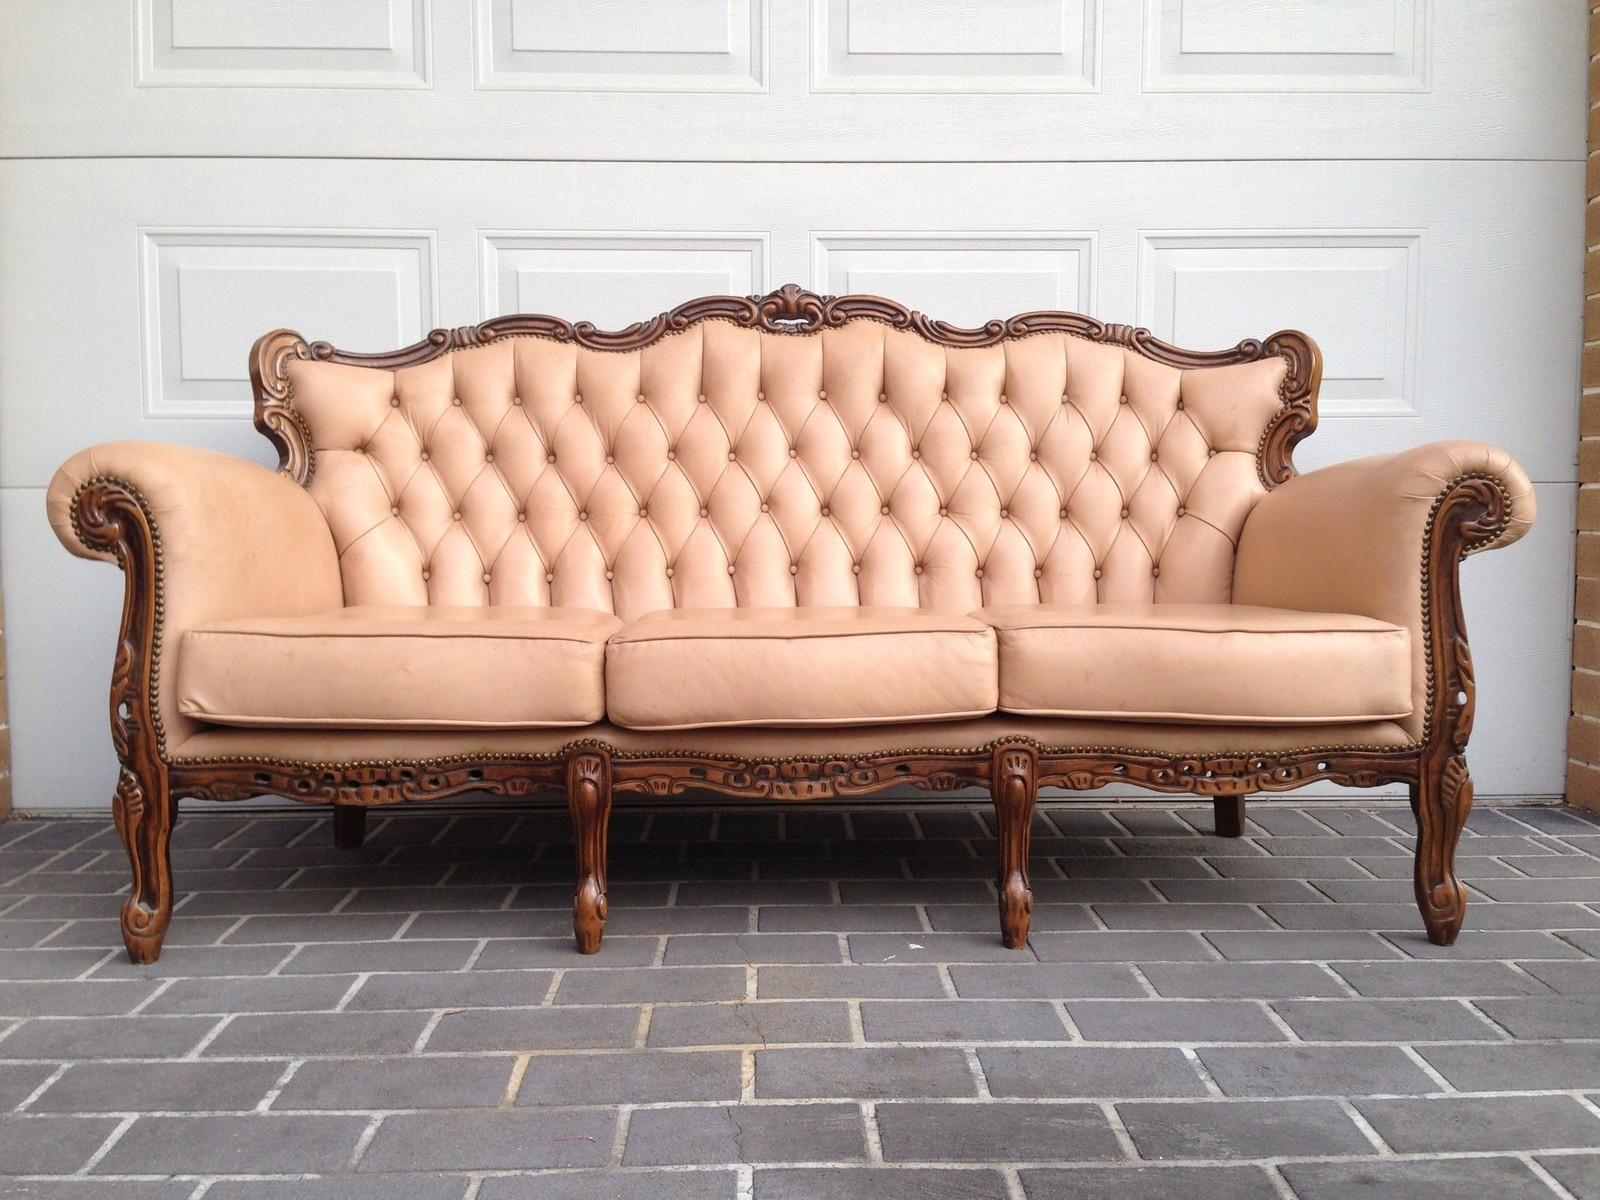 Sofa Brisbane Blush Vintage Leather French Sofa